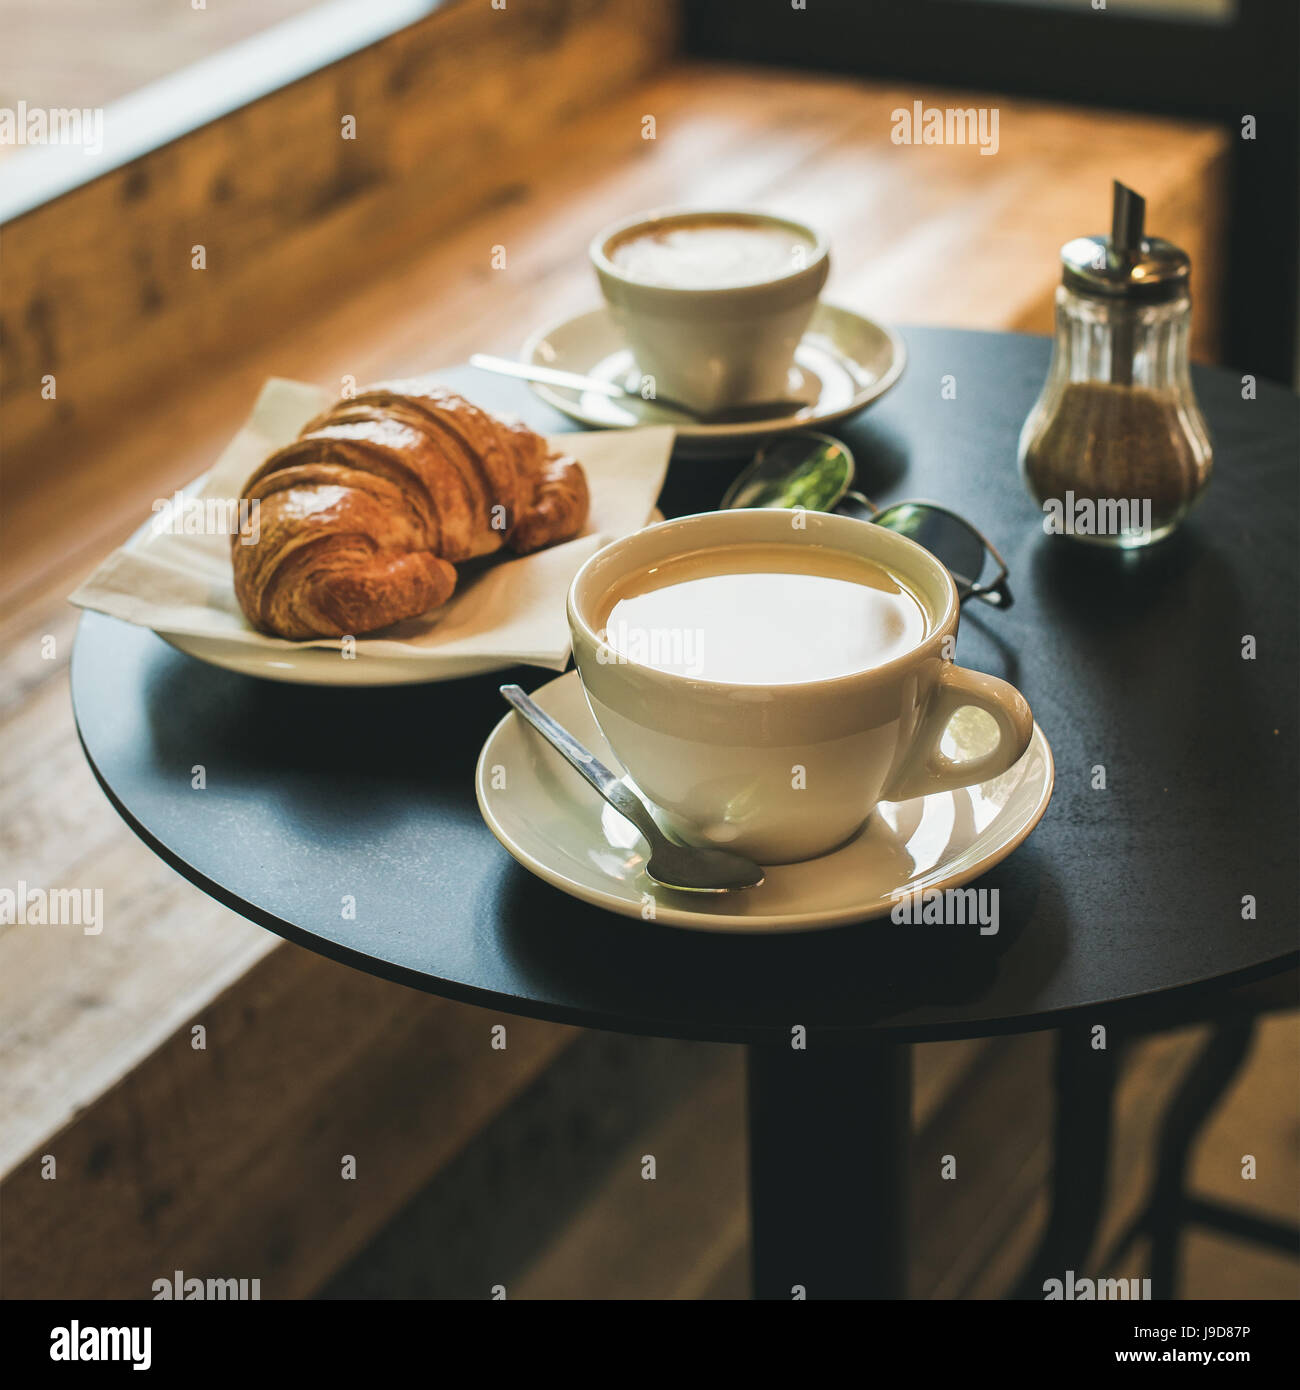 Coffee latte, cappuccino and croissant on table , square crop - Stock Image